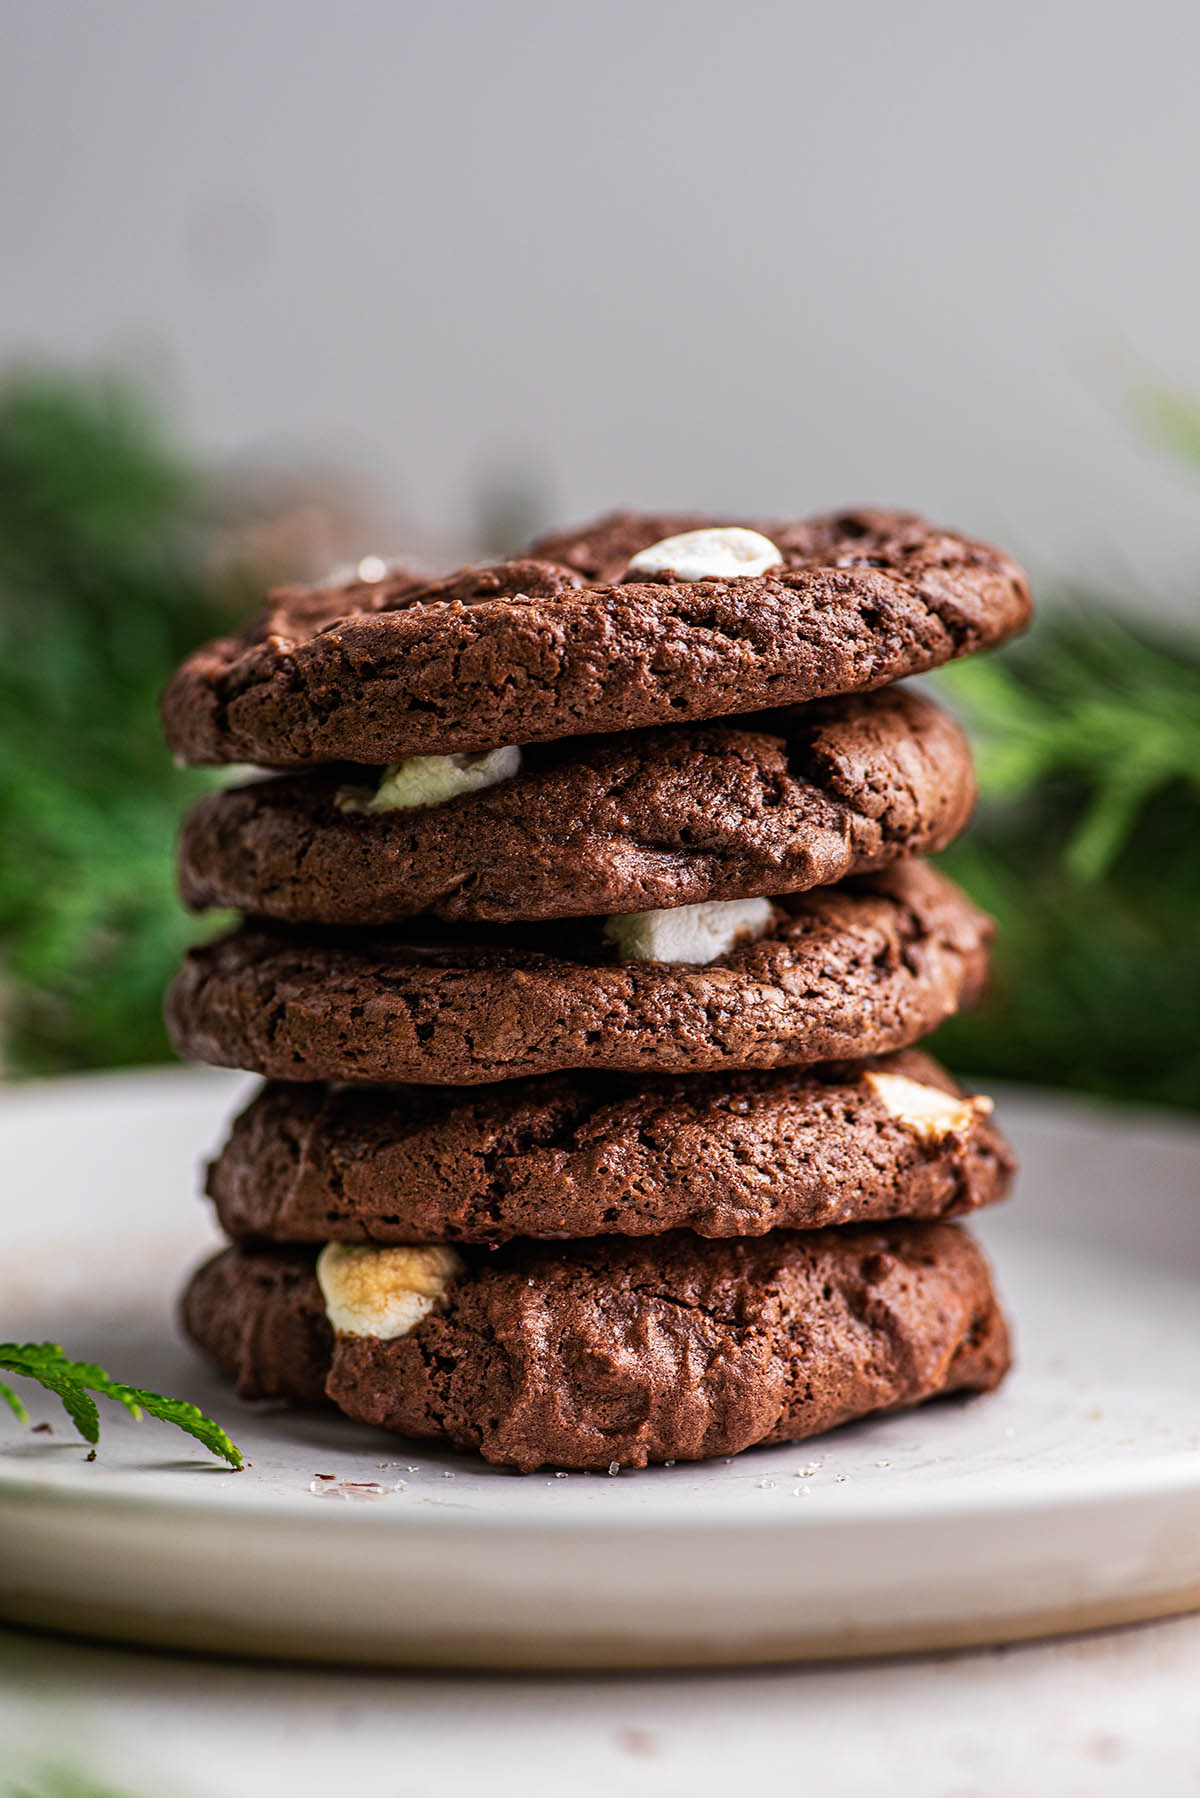 A stack of double chocolate cookies.